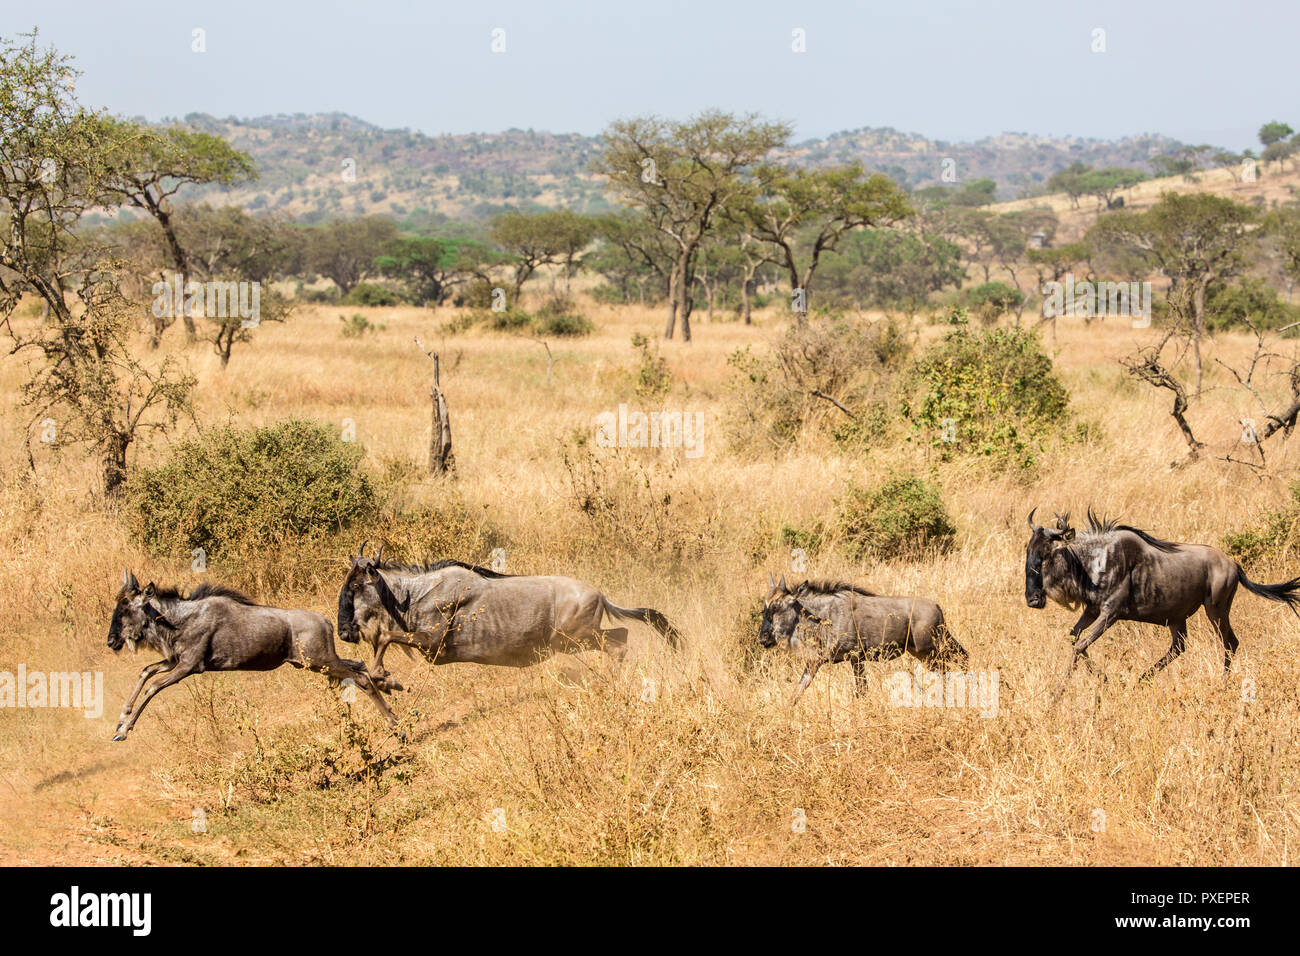 Great Wildebeest Migration in the Serengeti National Park, Tanzania - Stock Image